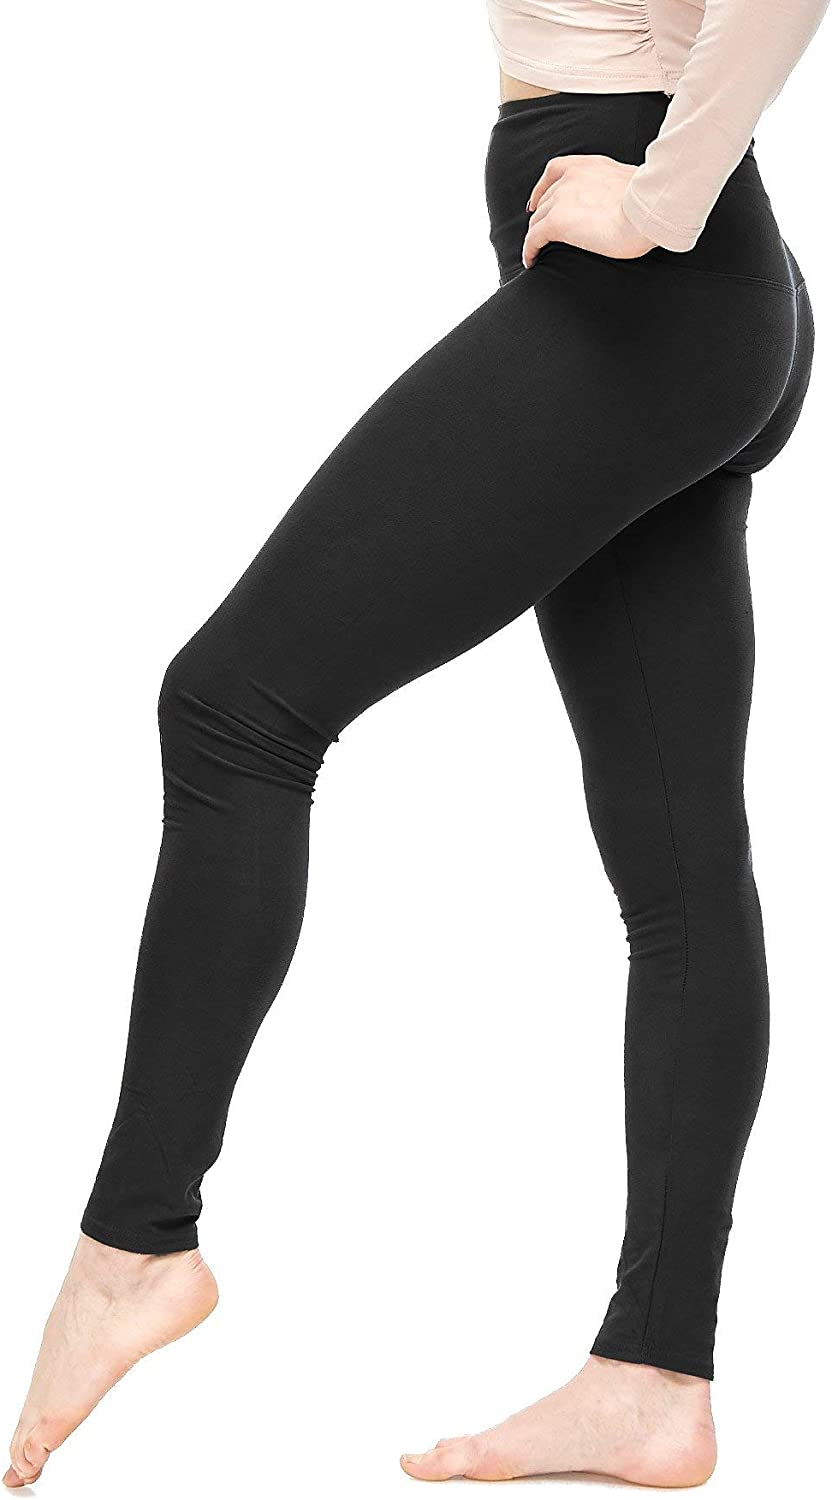 LMB Lush Moda Leggings for Women High Waisted with Buttery Extra Soft Fabric - for Workout & Yoga Pants XS to 5XL